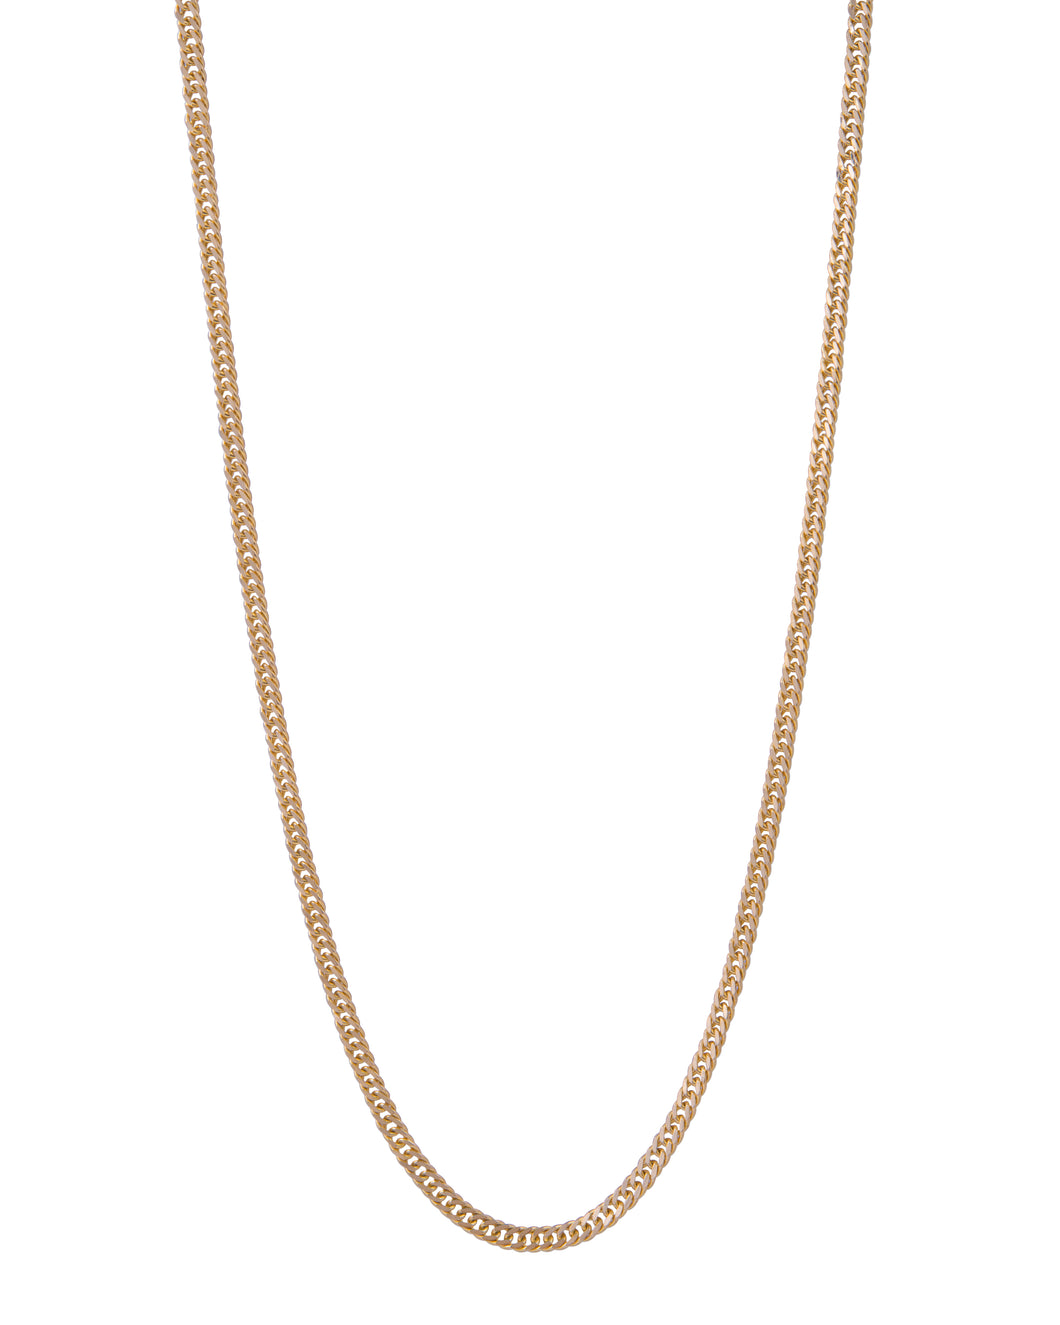 AUDE - Solid 14k Gold